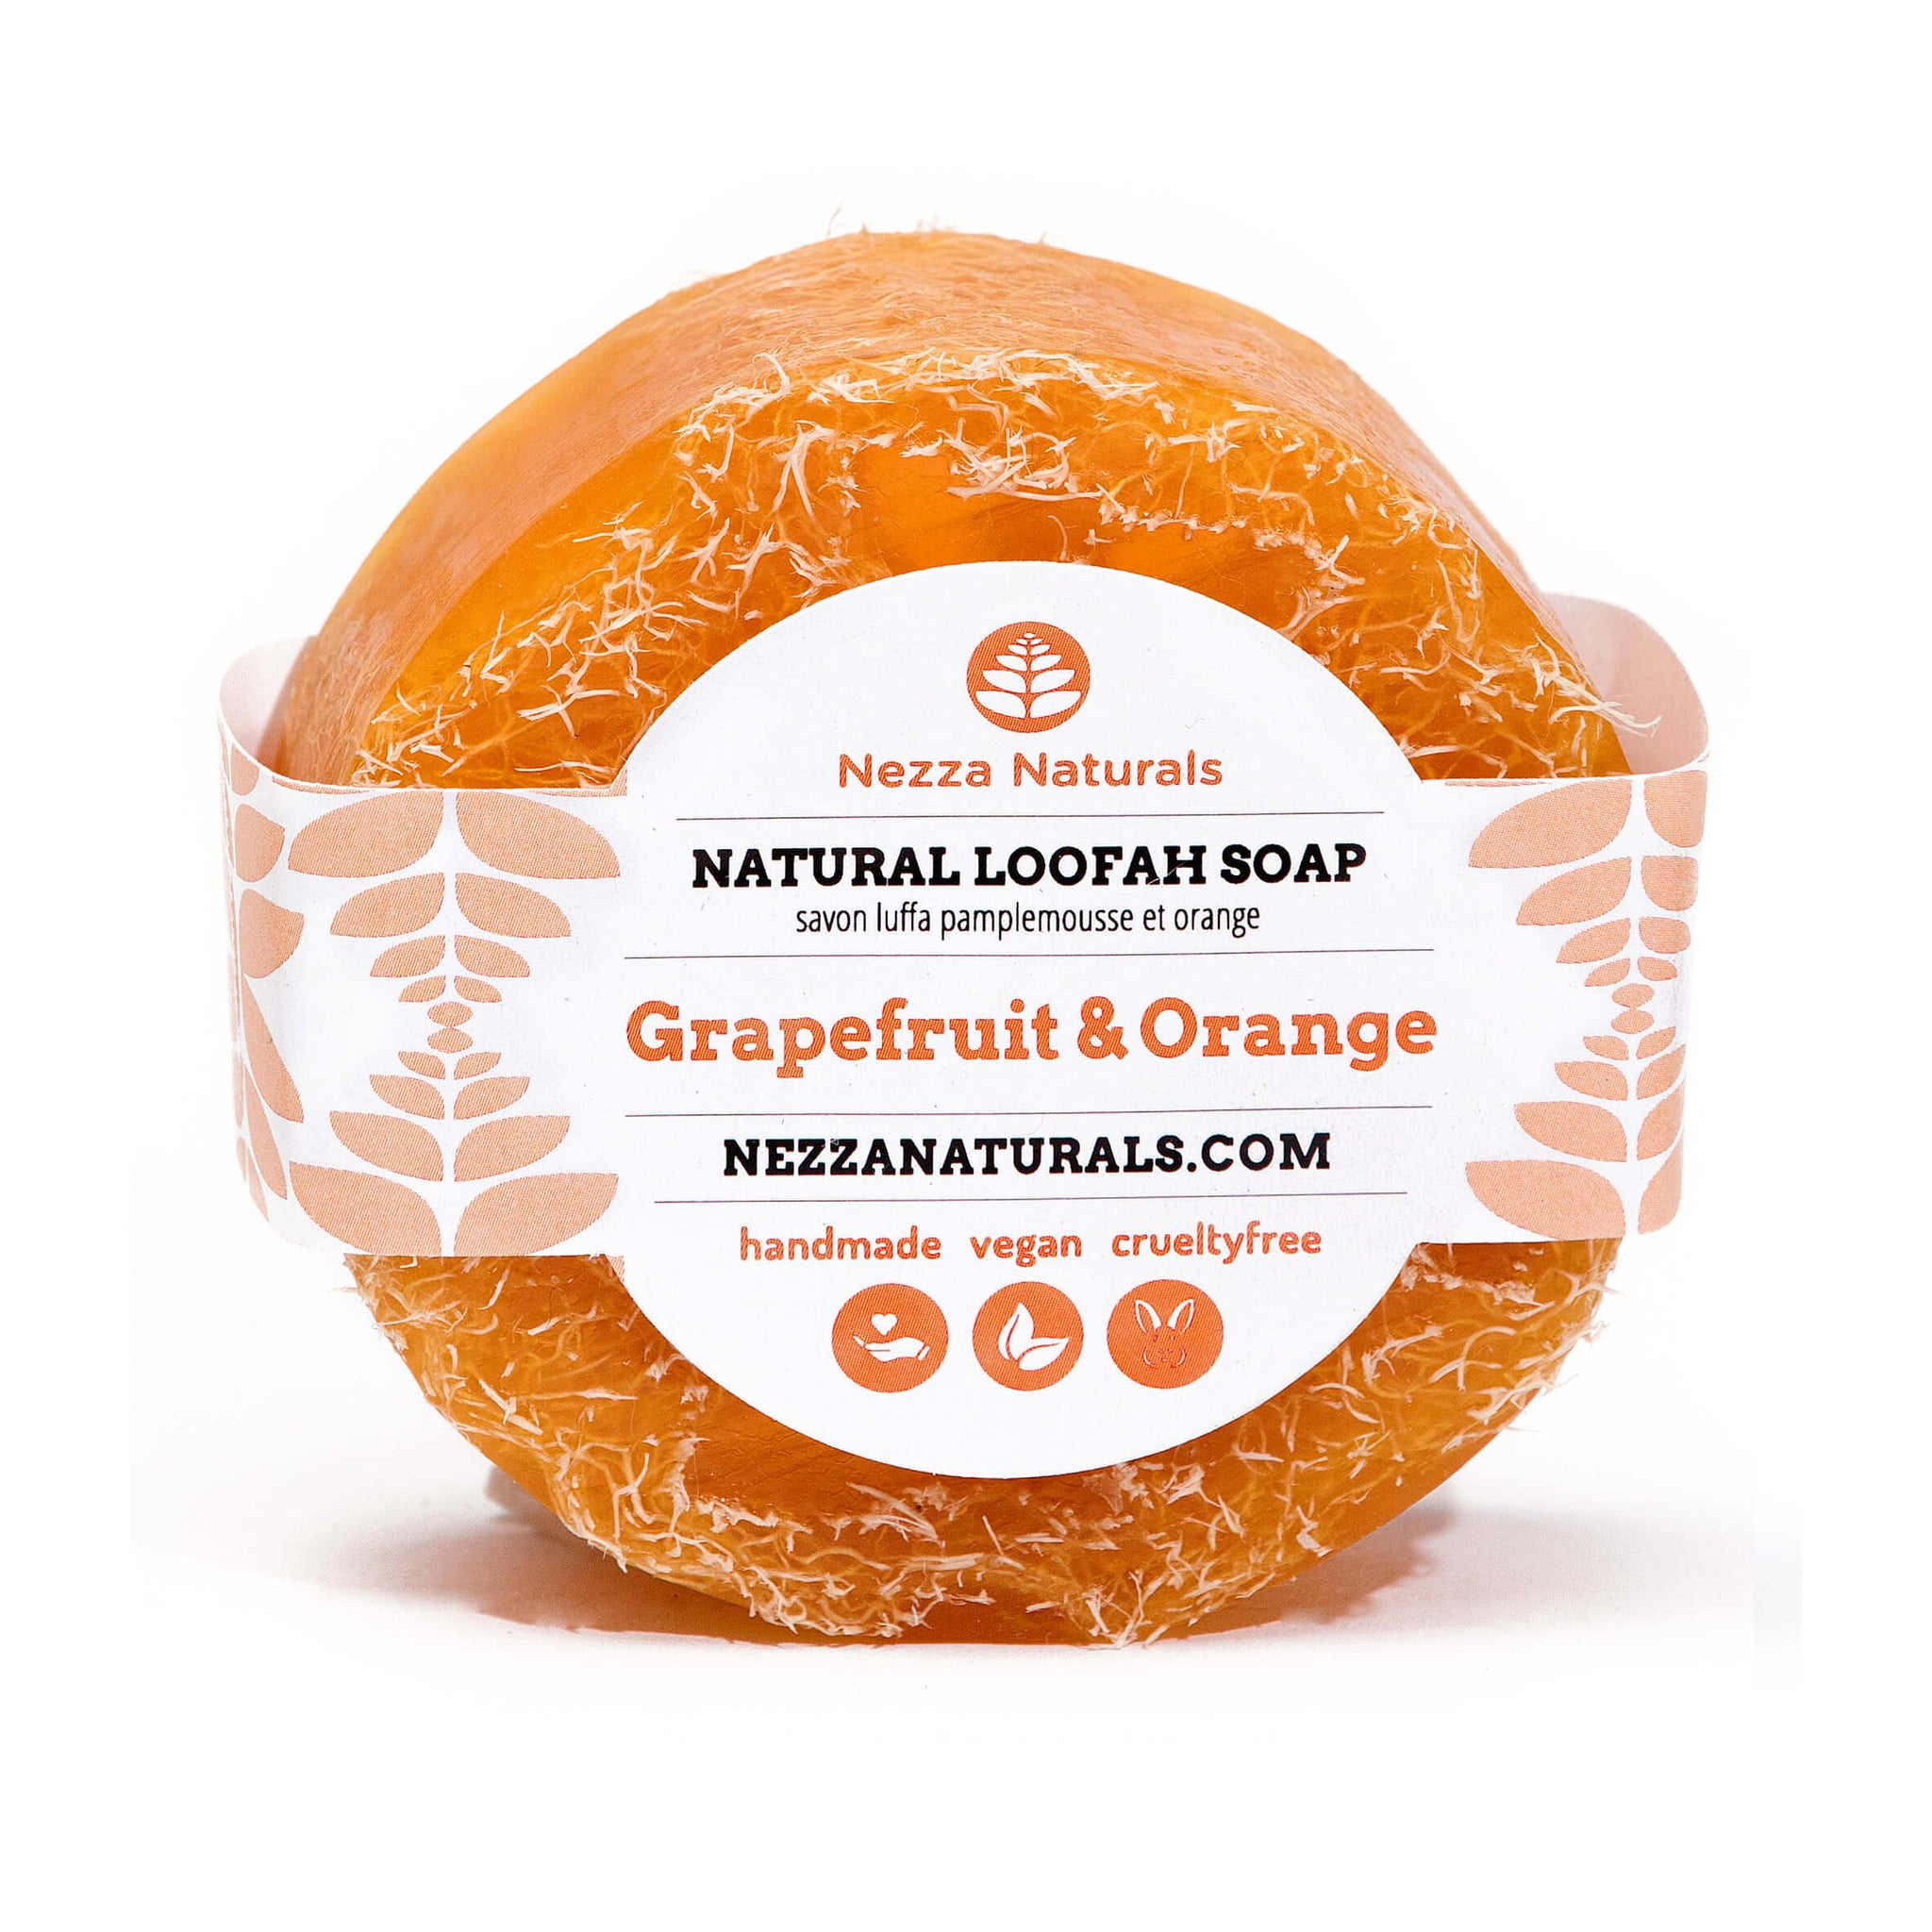 Grapefruit & Orange Loofah Soap Bar